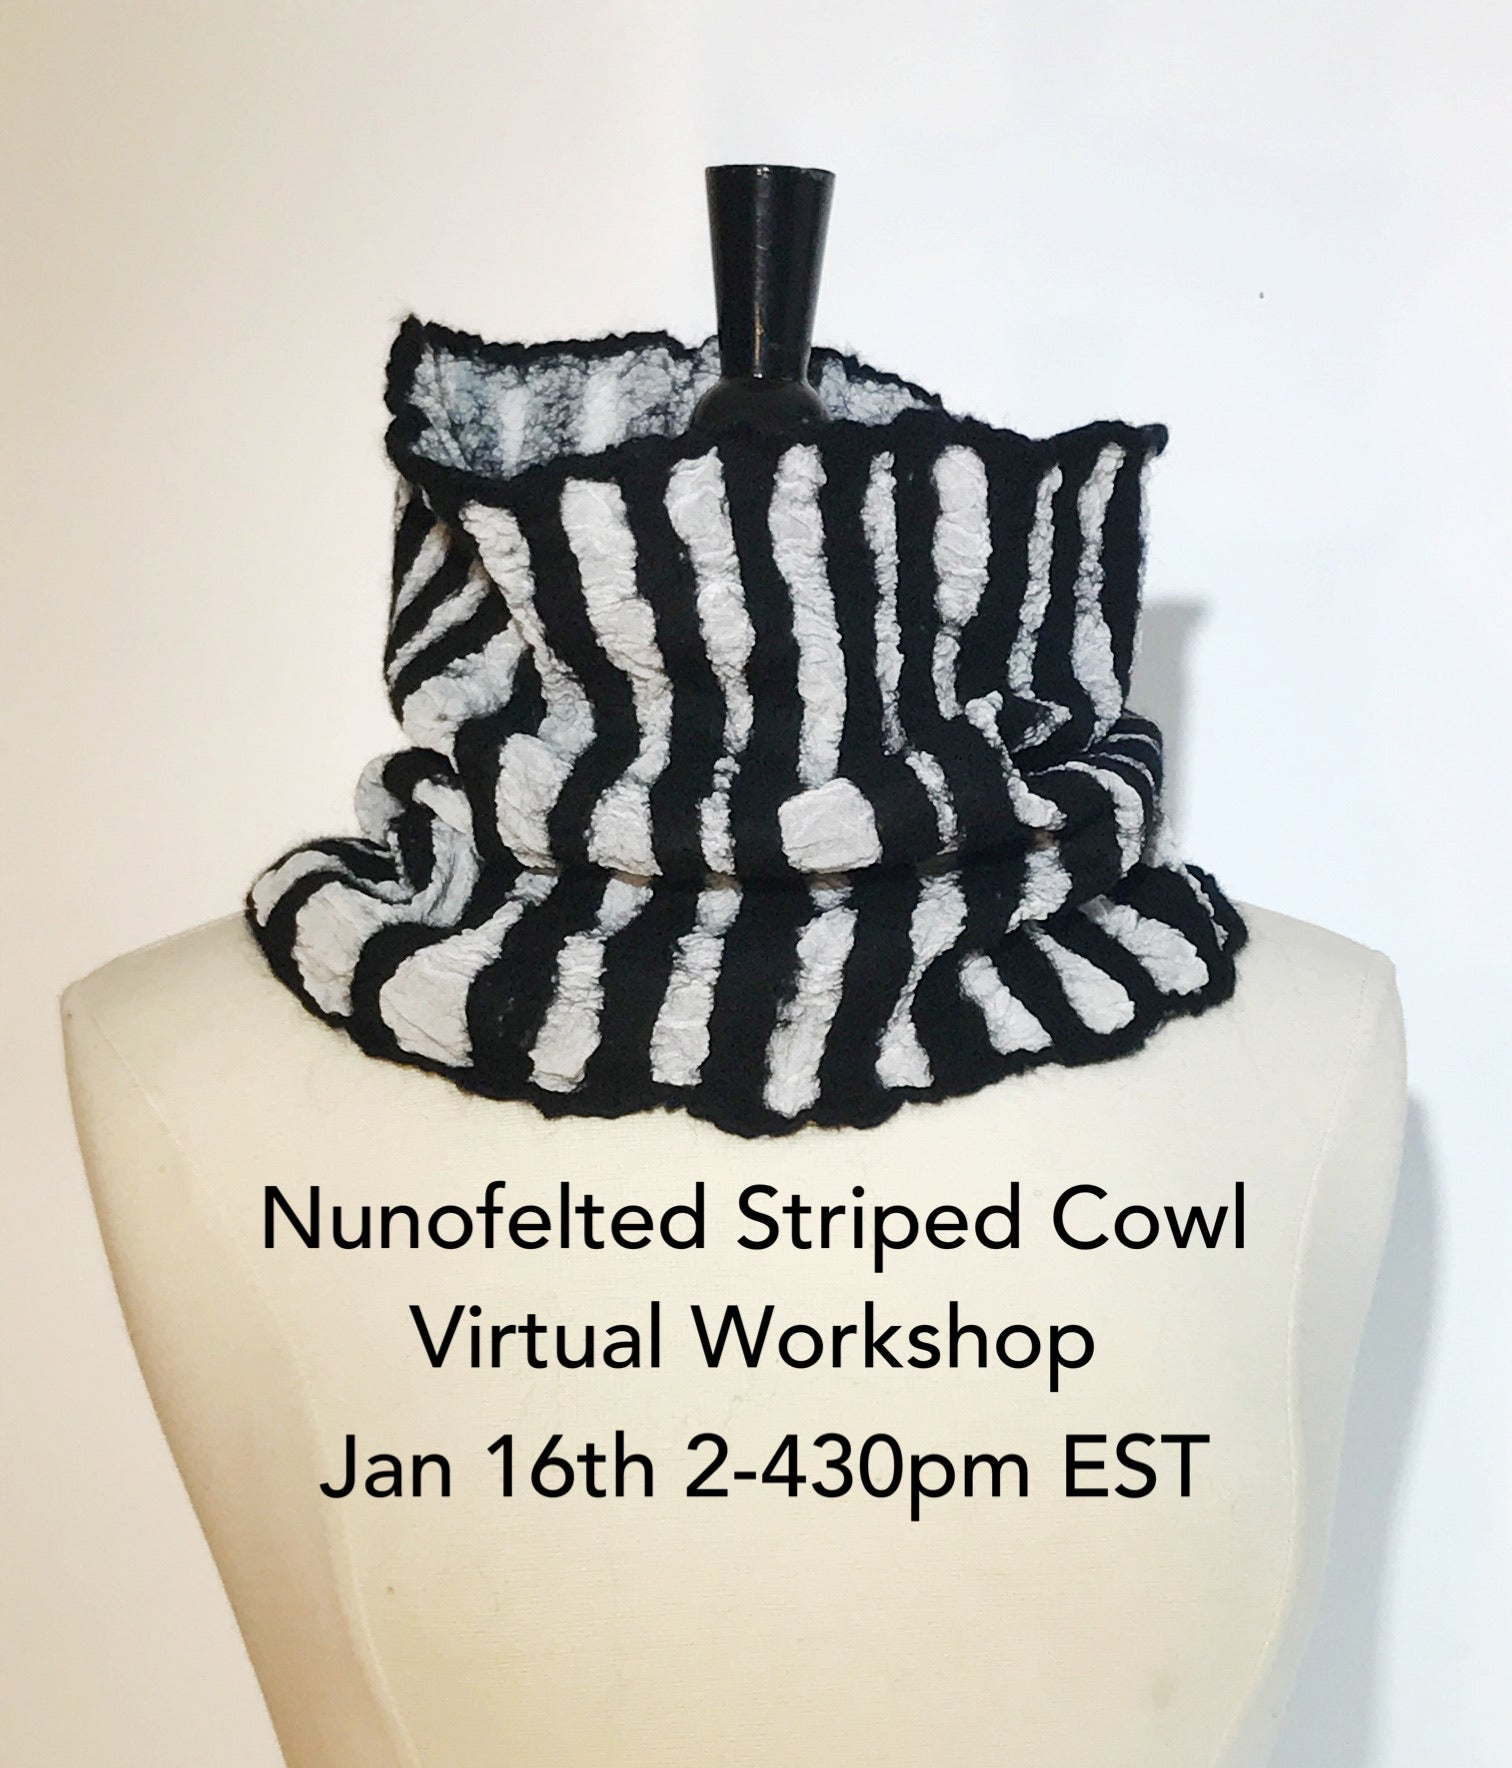 Nunofelted Striped Cowl Workshop